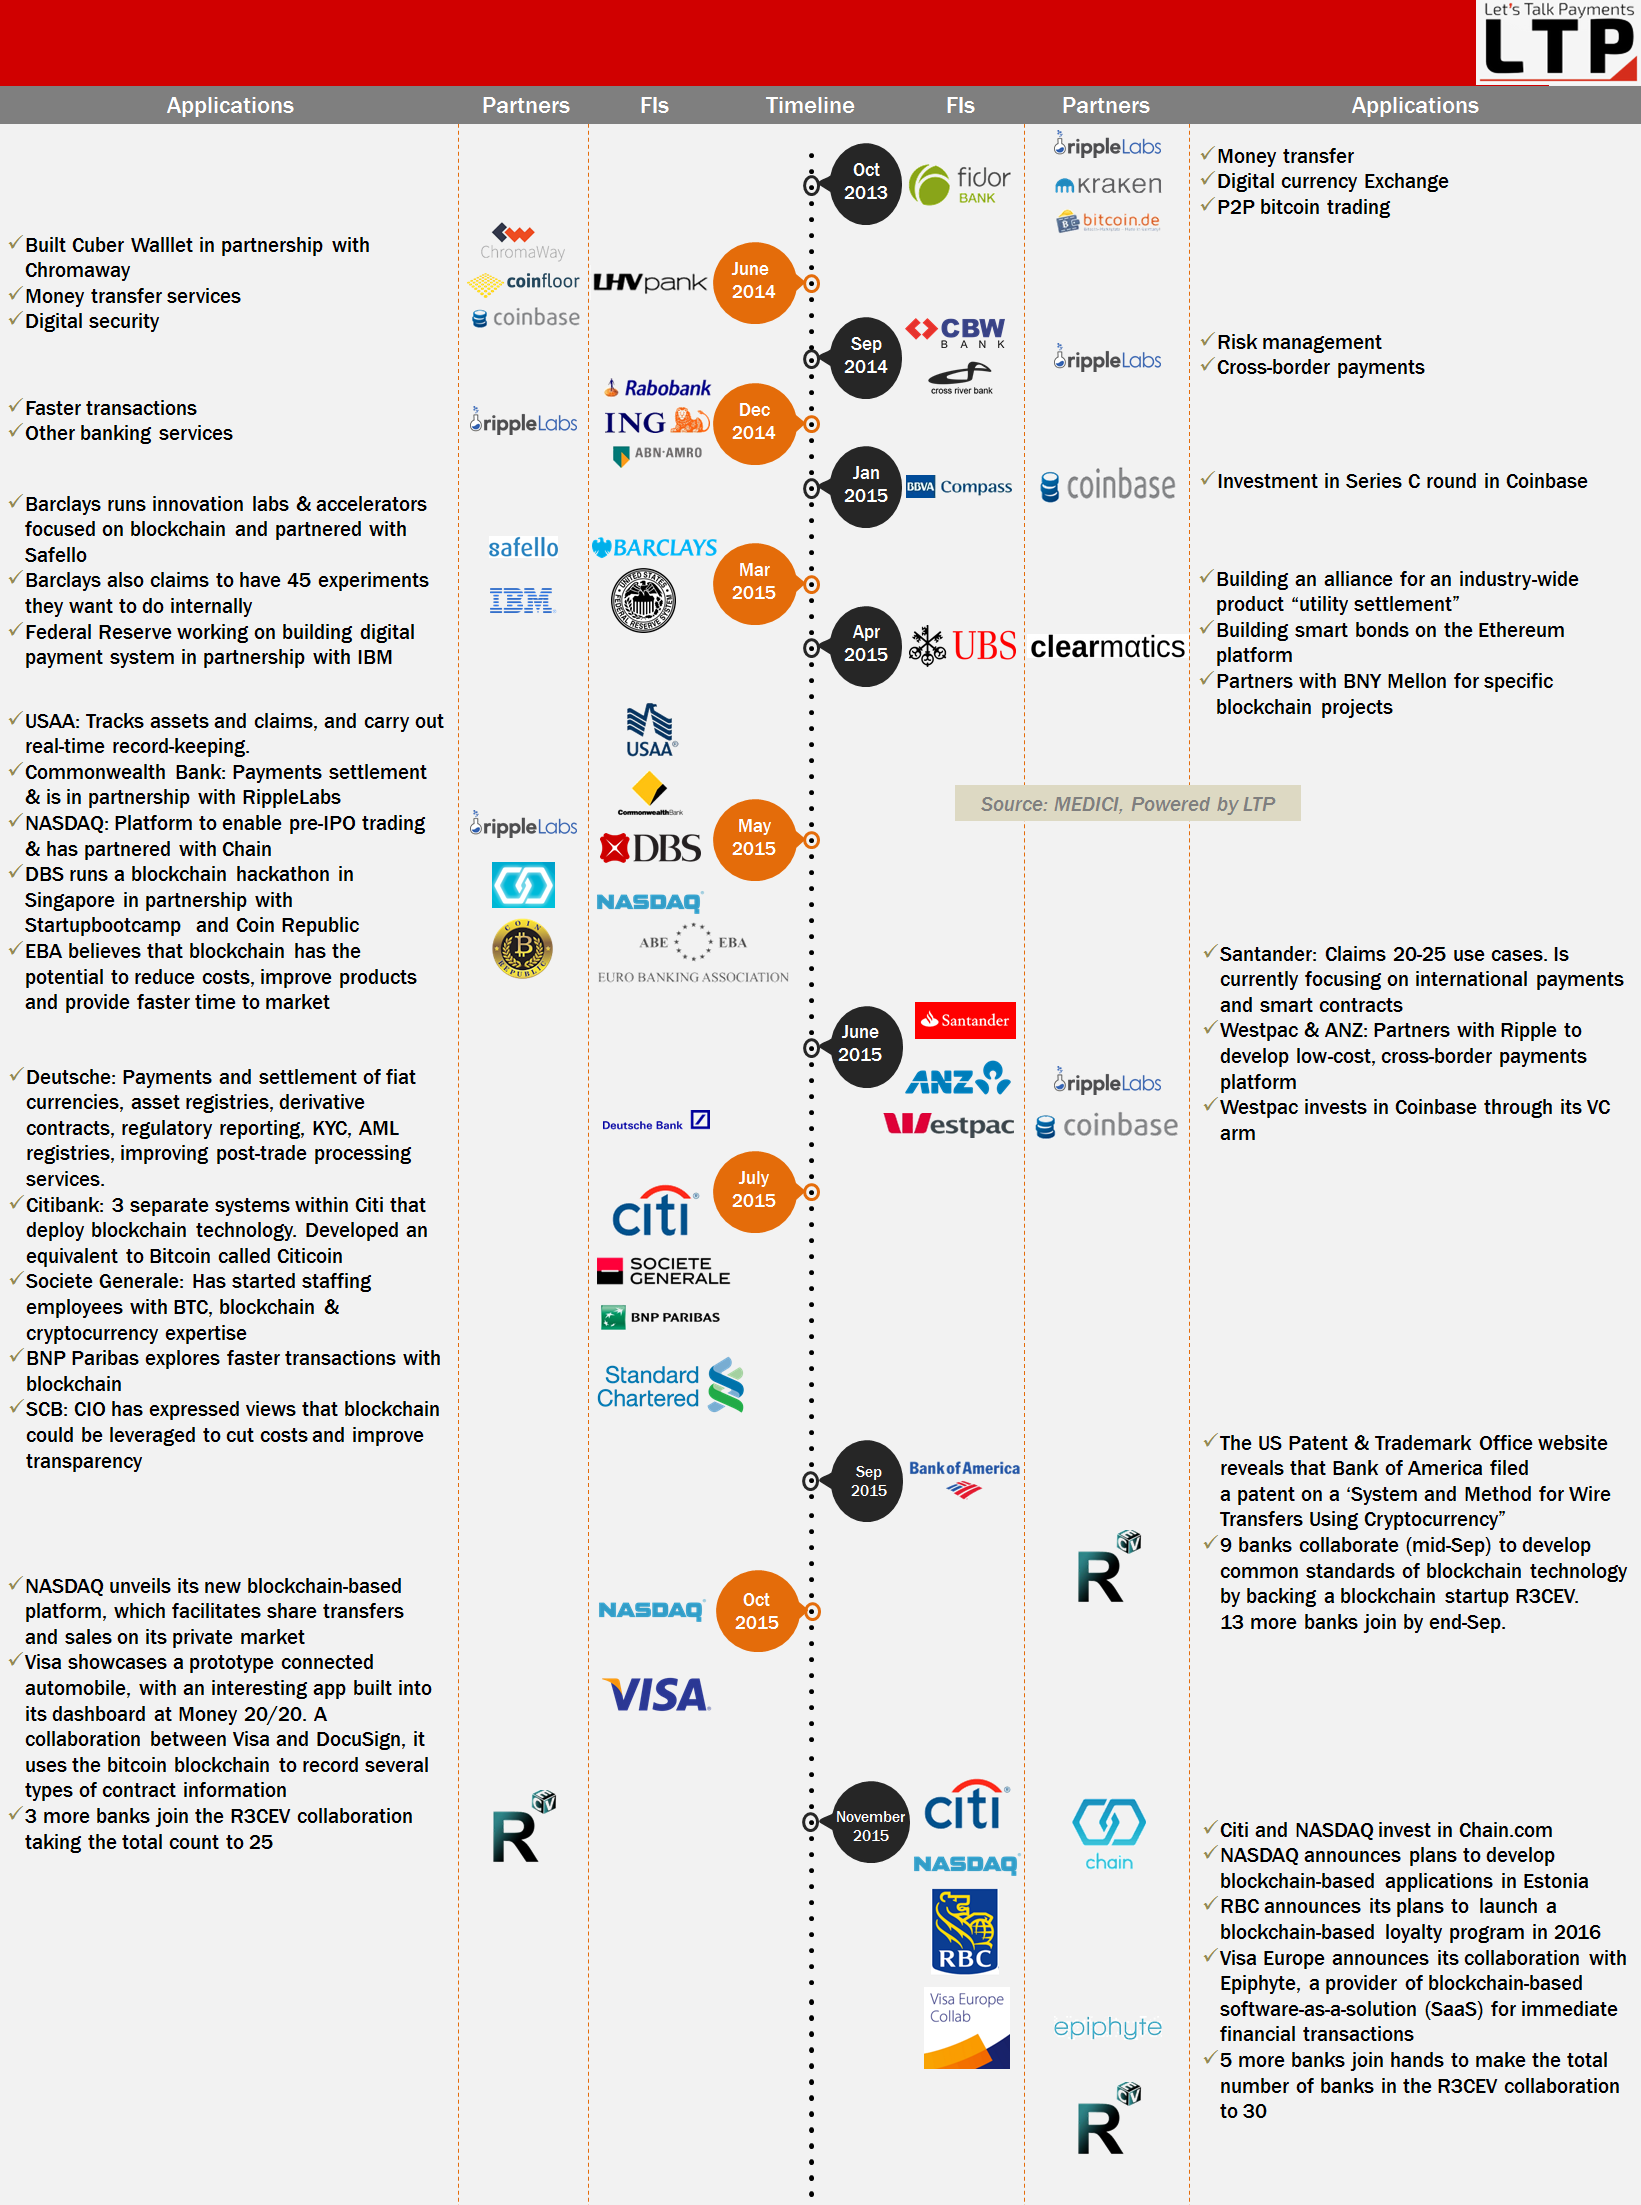 Blockchain Activity Of Fis  Banks Updated Analysis Infographic